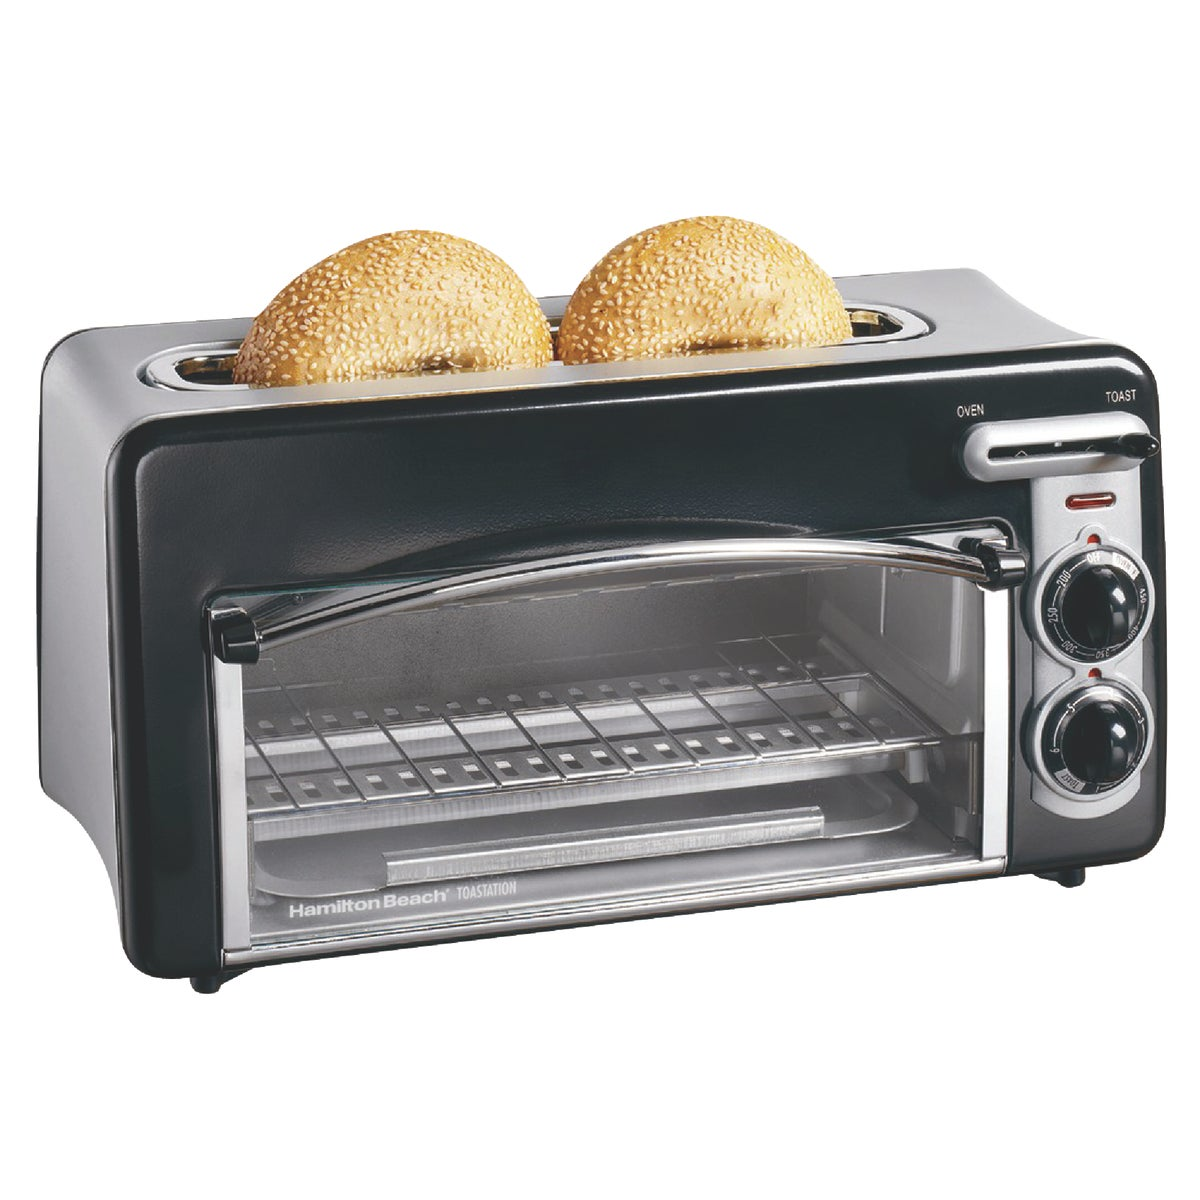 TOASTATION TOASTER OVEN - 22708 by Hamilton Beach Brand